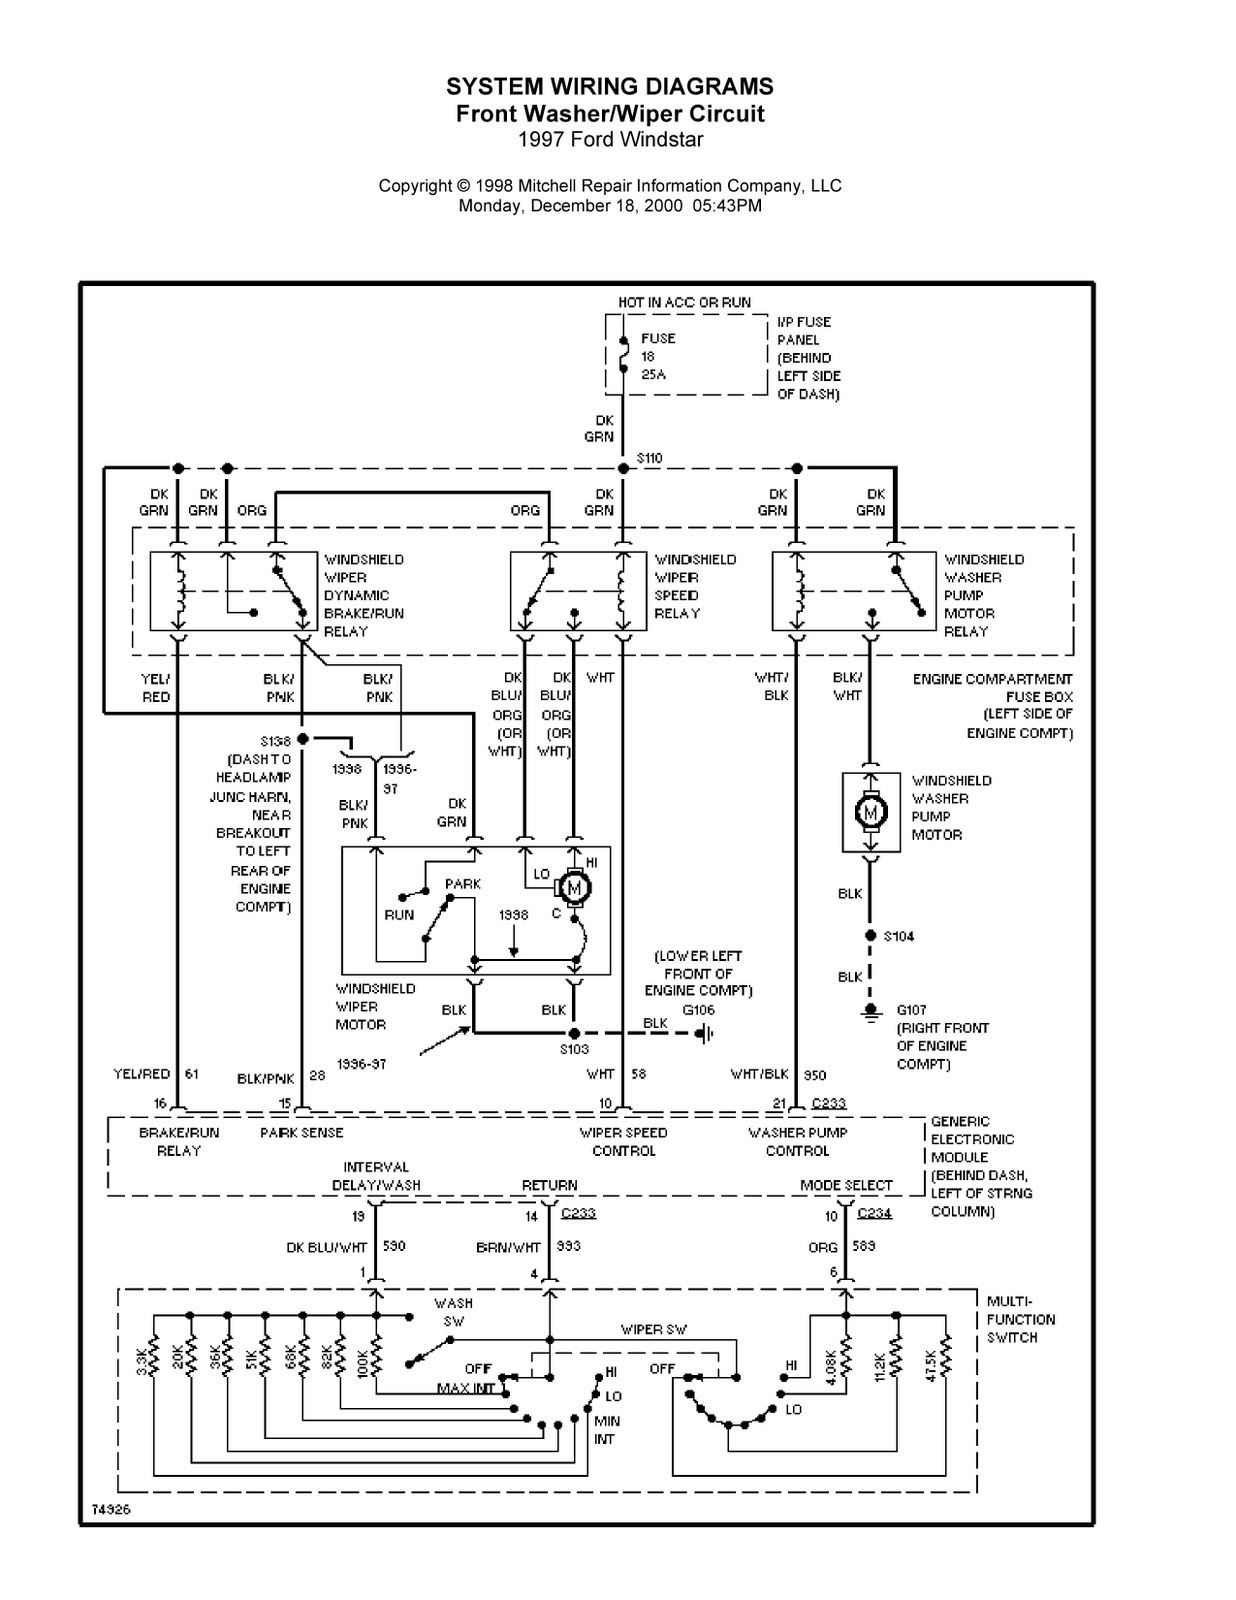 1997 ford windstar complete system wiring diagrams wiring we provide you the clear and readable images this makes you easier to comprehend the whole parts in the schematic wiring diagram